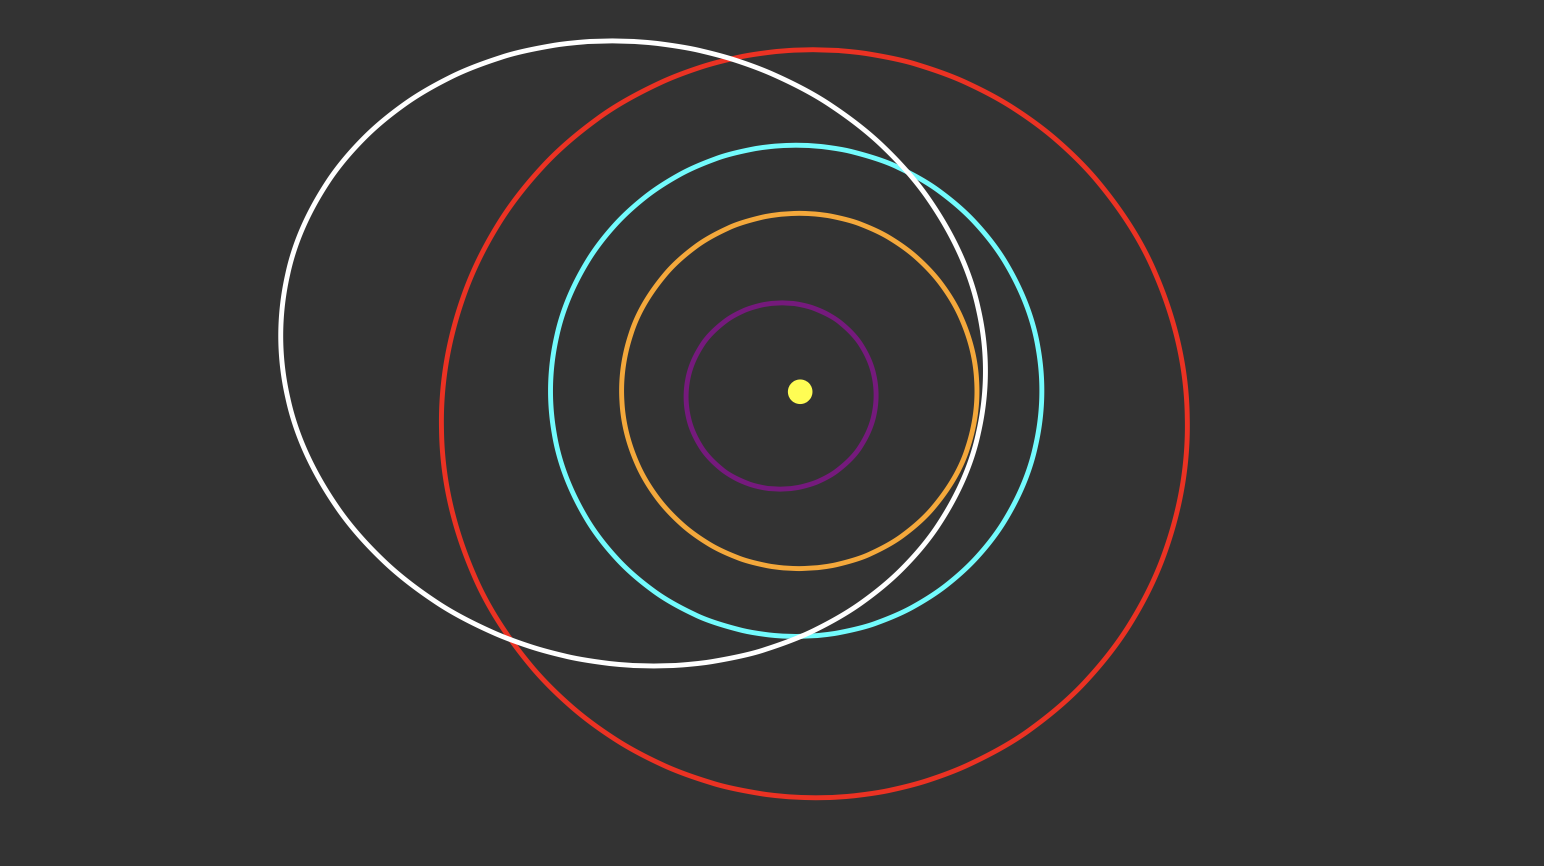 Blue orbit is the Earth. White eclipse marks orbit of the asteroid 35396.